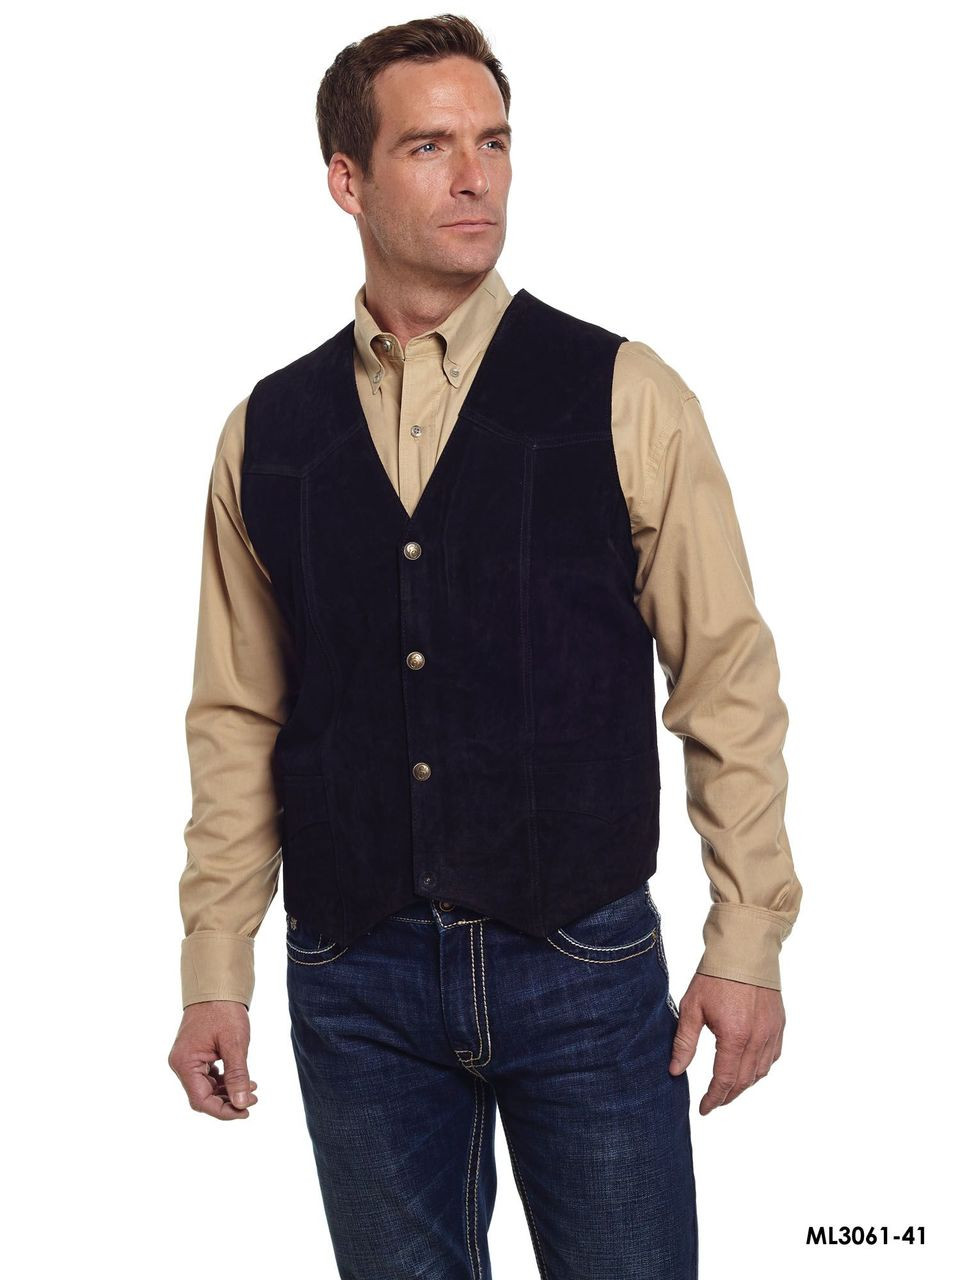 4dff8baa9b5 Cripple Creek Mens Suede Leather Snap Western Vest ML3061